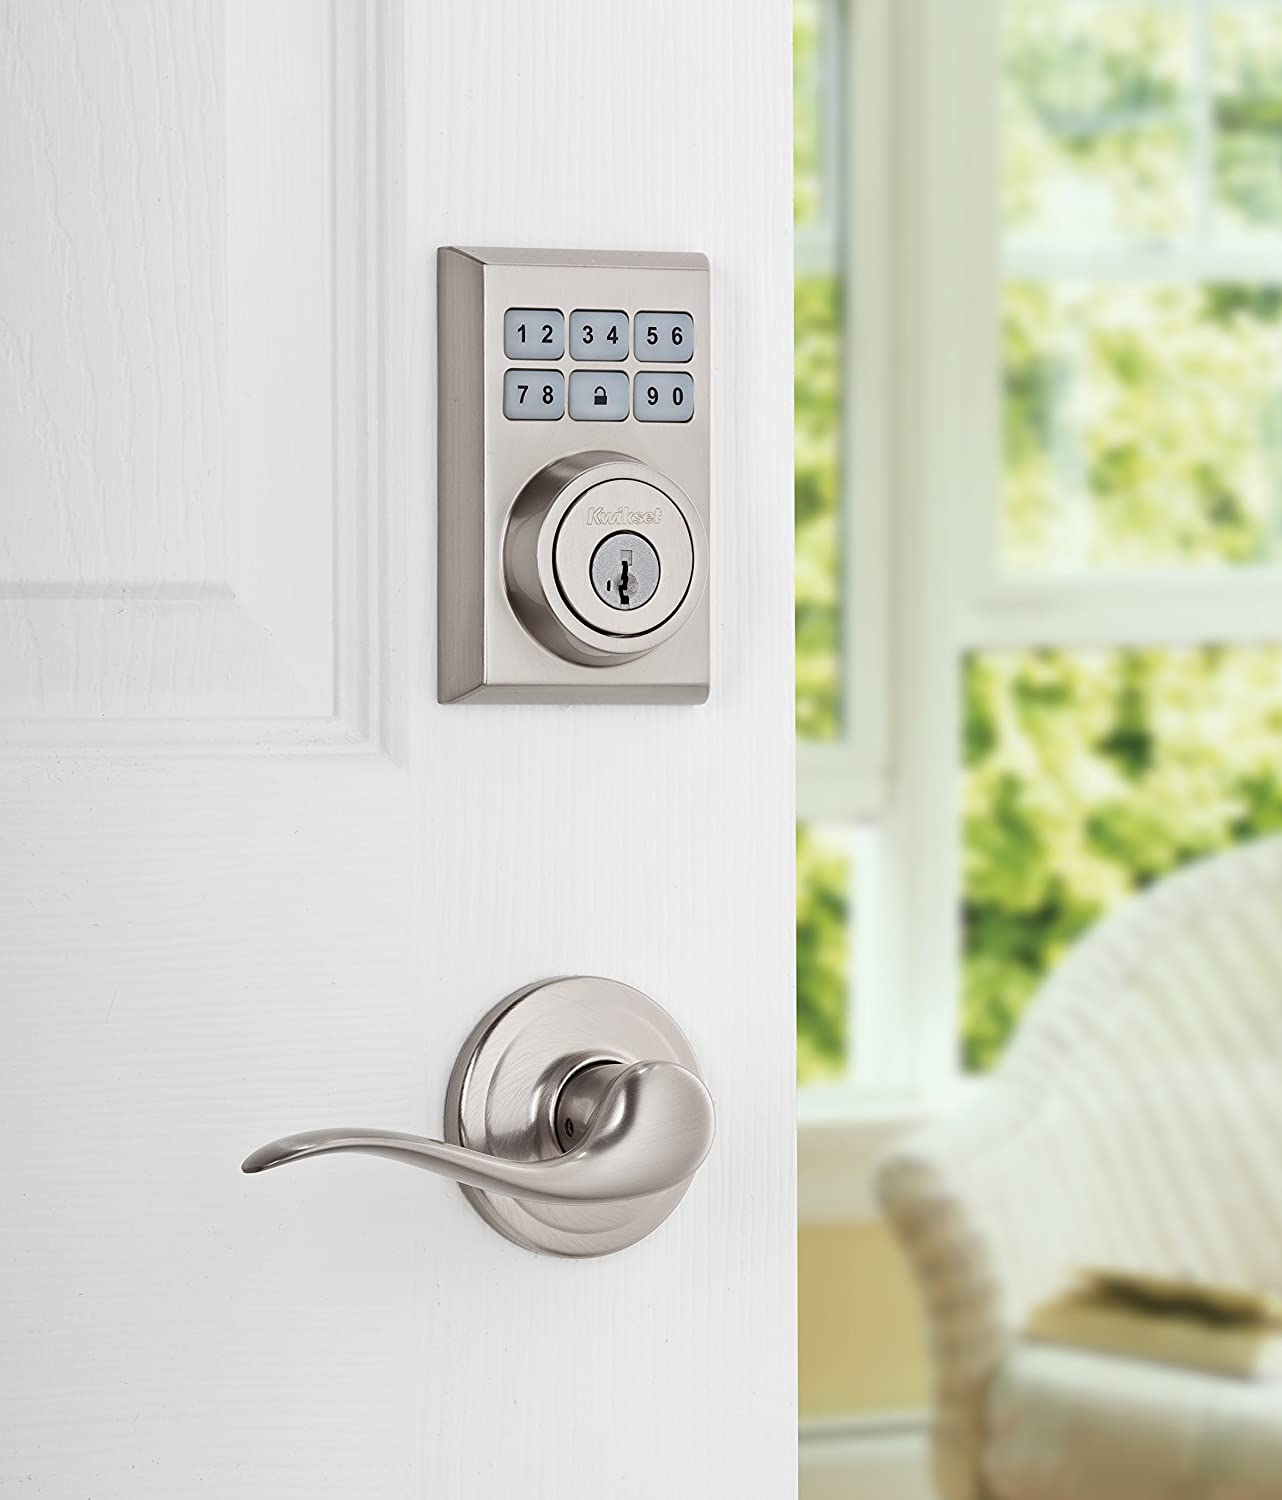 Kwikset 99090-020 SmartCode Electronic Deadbolt featuring Smart Key, Satin Nickel - - Amazon.com